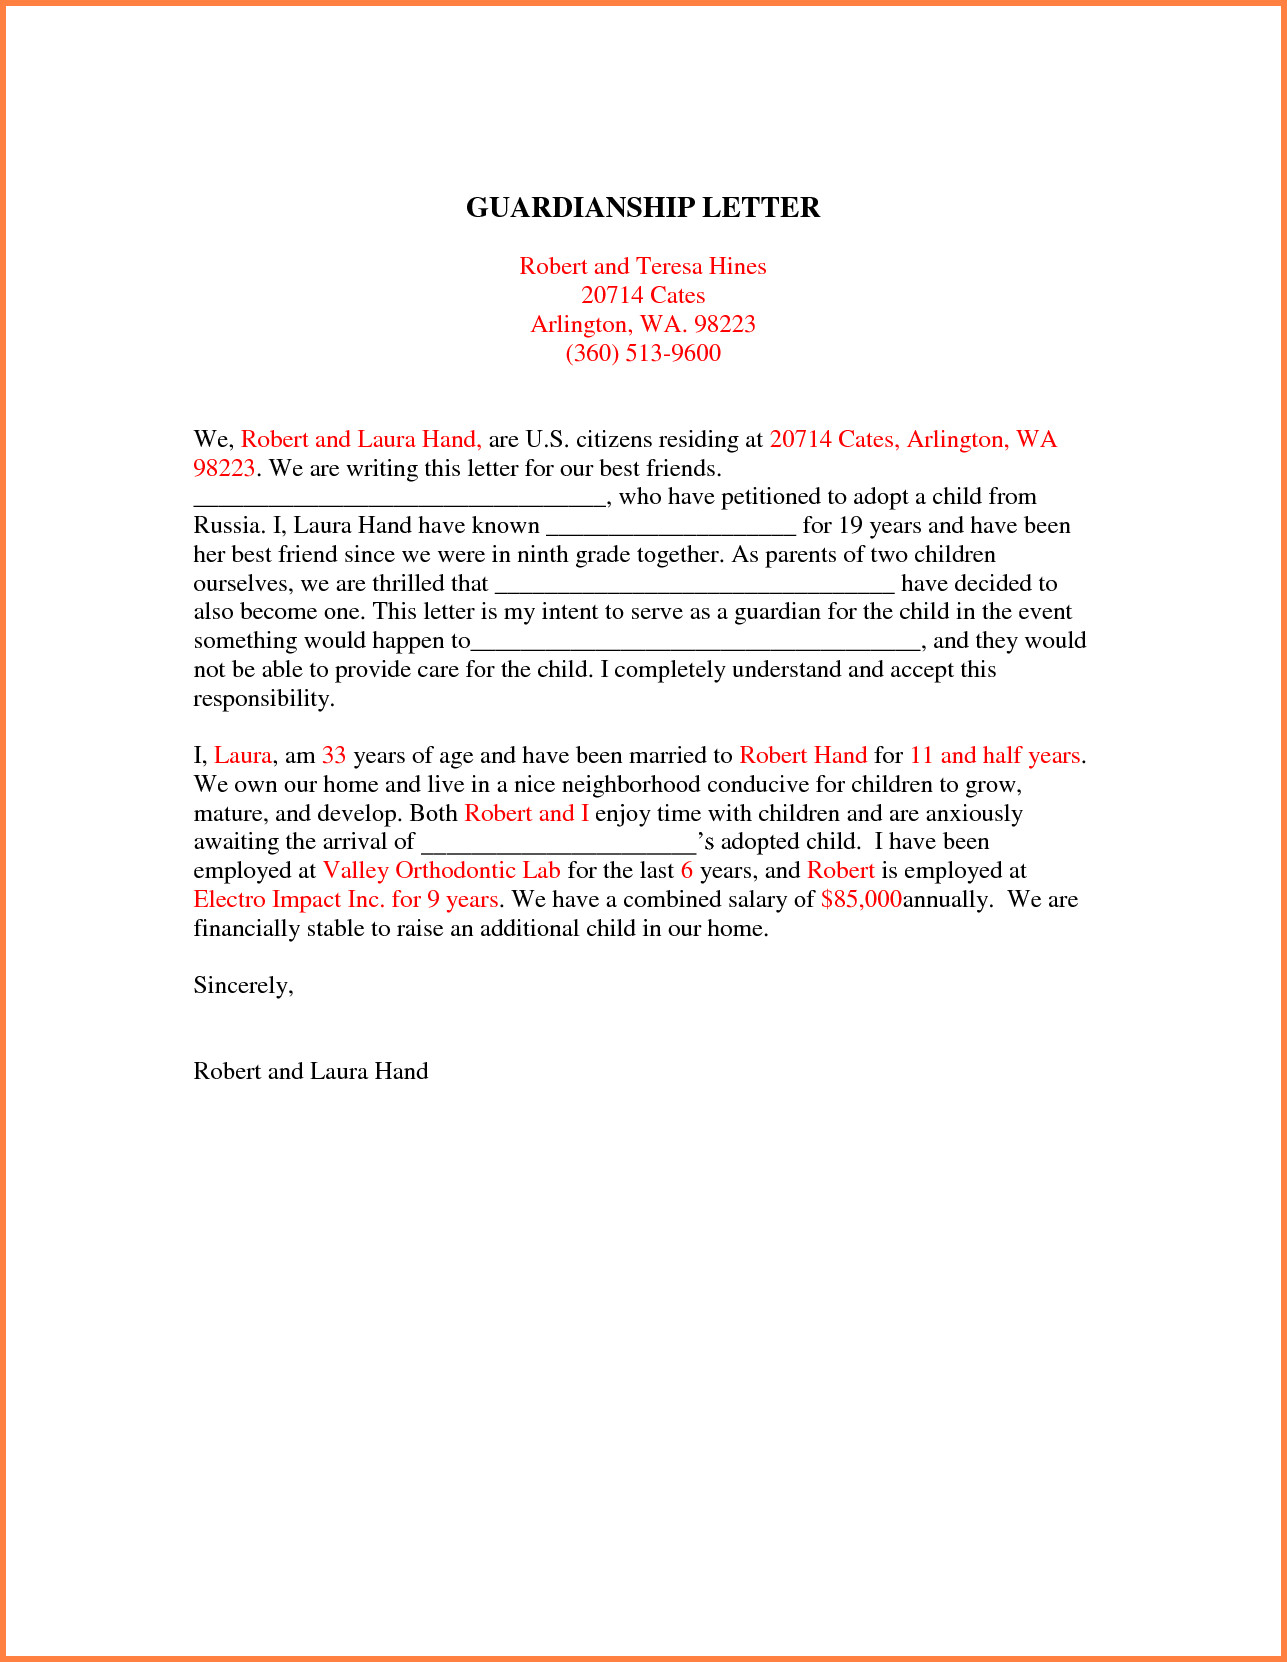 Permanent Guardianship Letter Template - Sample Guardianship Letter Inspirational Nice Temporary Guardianship